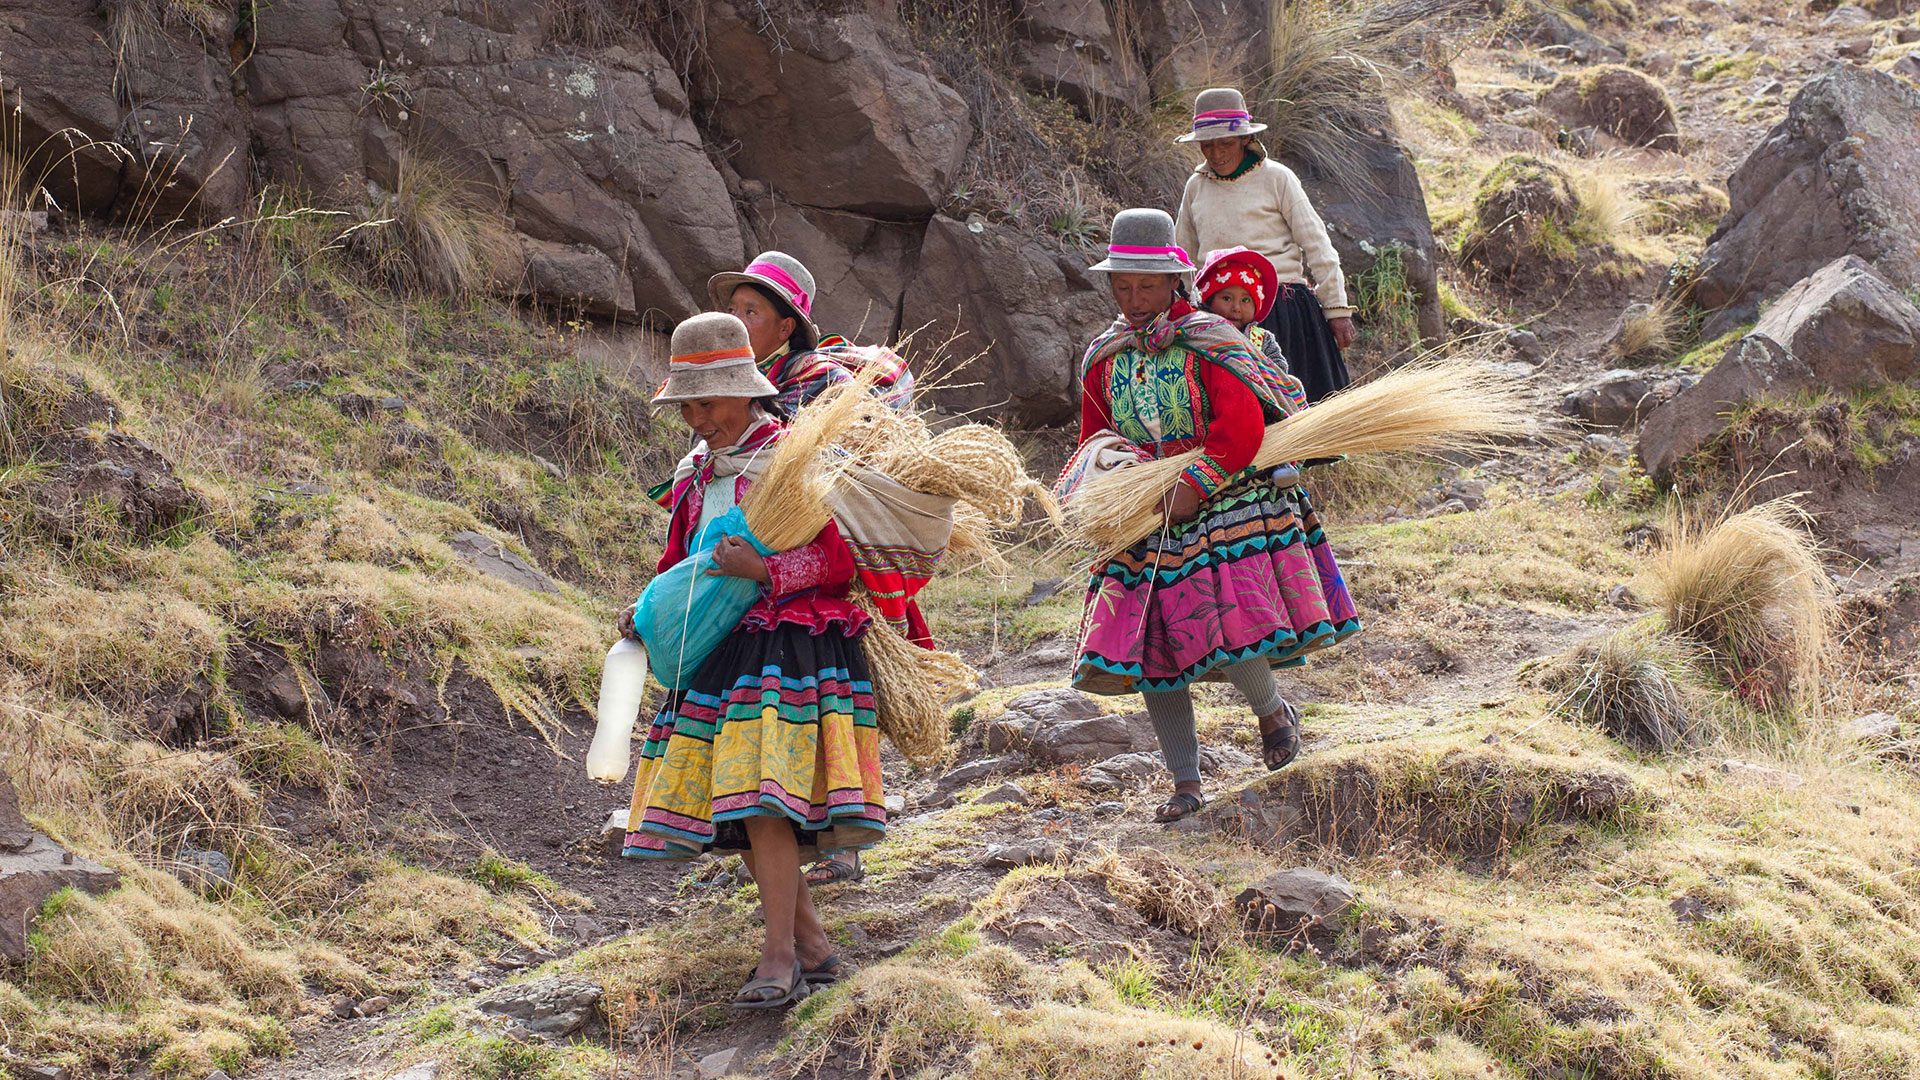 A group of women carry the native straw used to build the Q'eswachaka rope bridge in Peru.